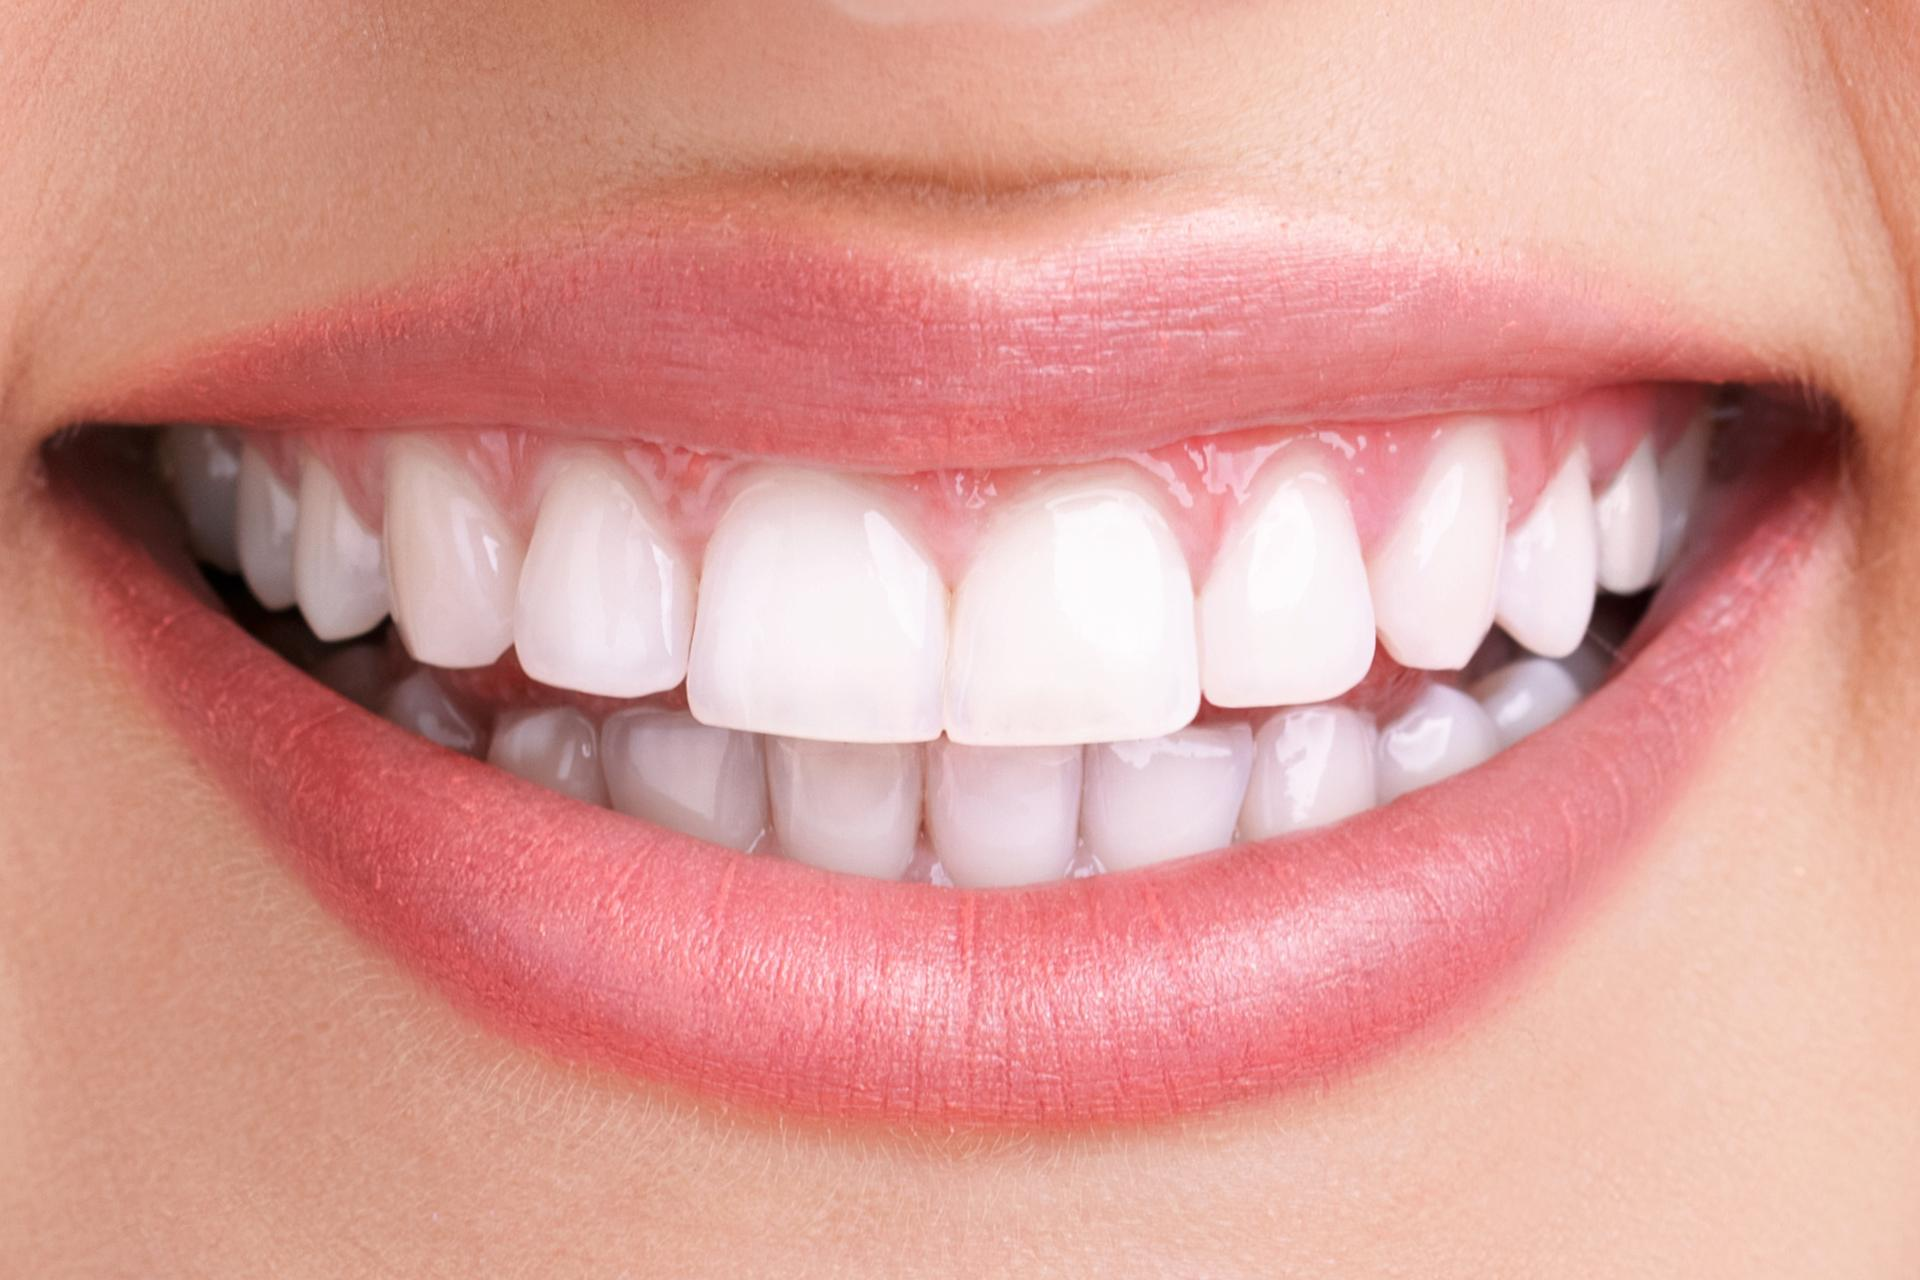 teeth-whitening-afte